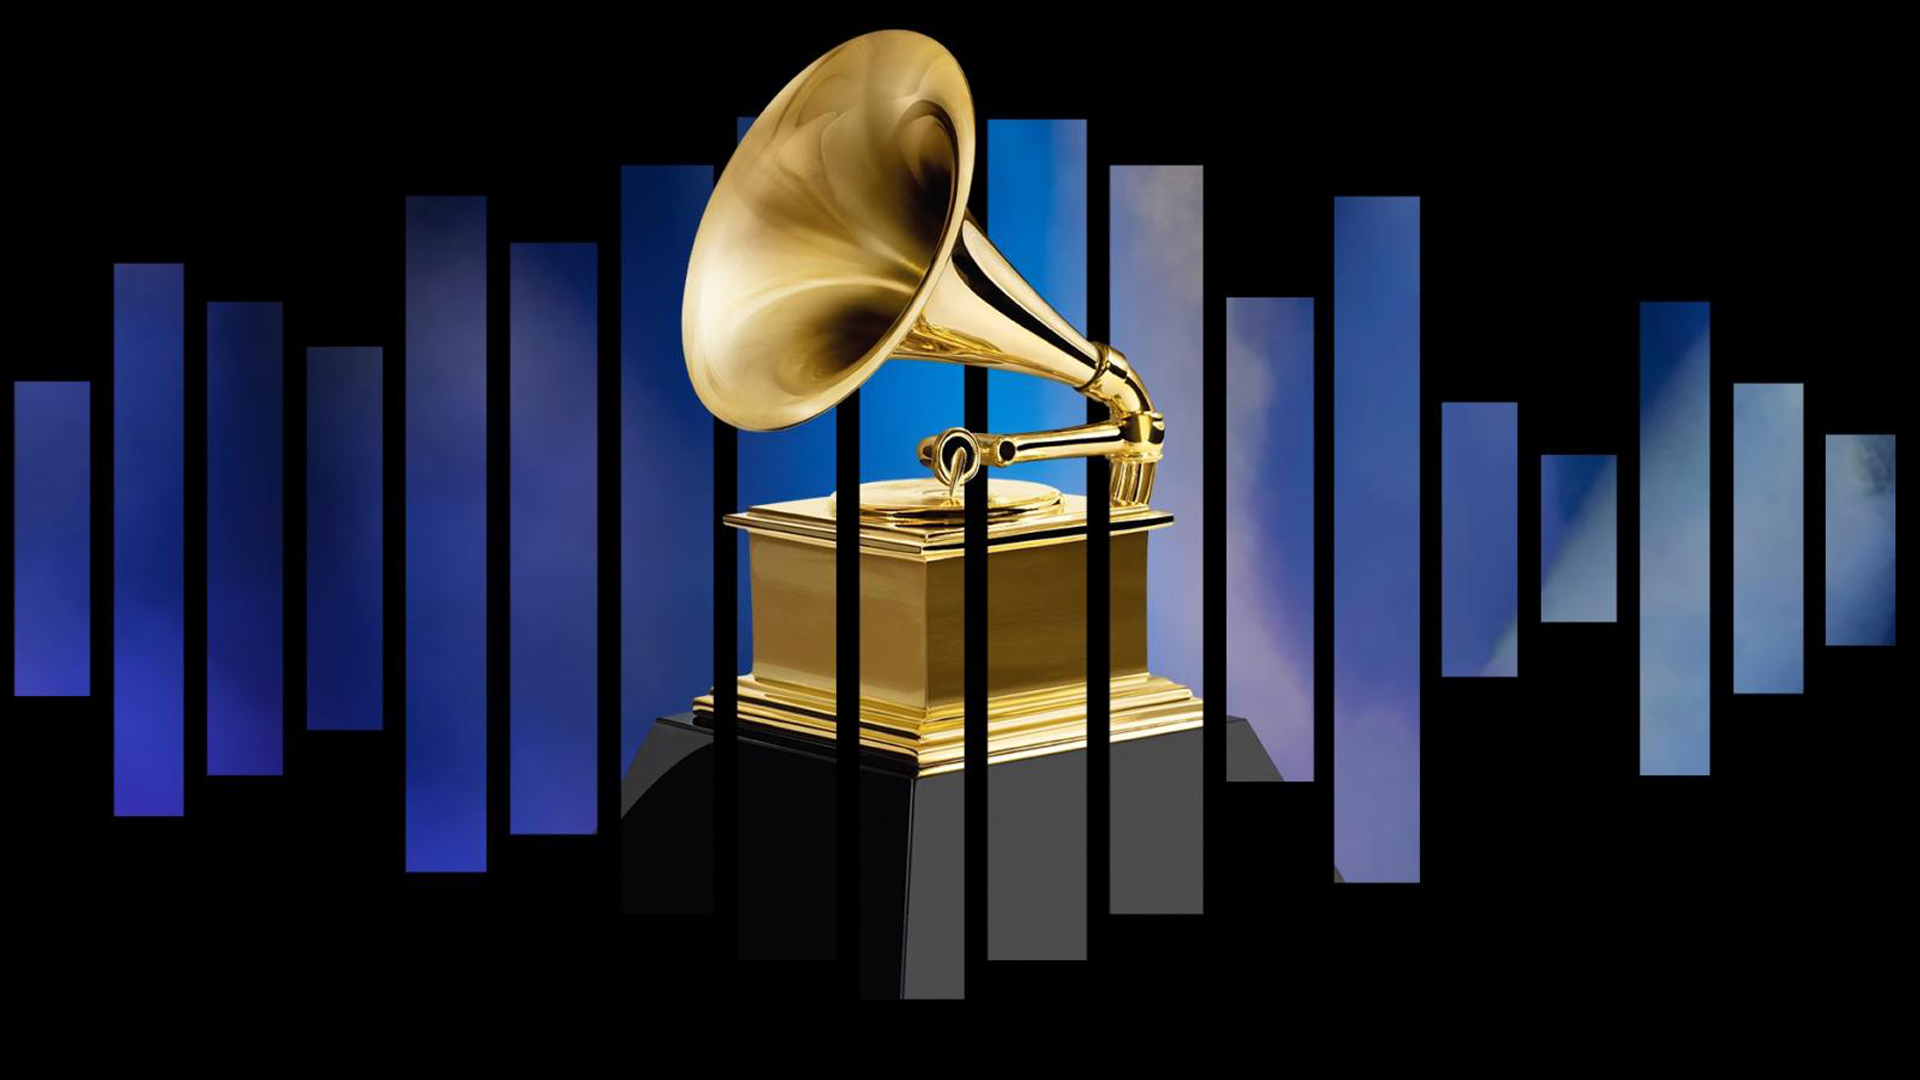 RECORDING ACADEMY® AND AFM TO PRODUCE THE 62ND ANNUAL GRAMMY AWARDS® TELECAST PROGRAM BOOK